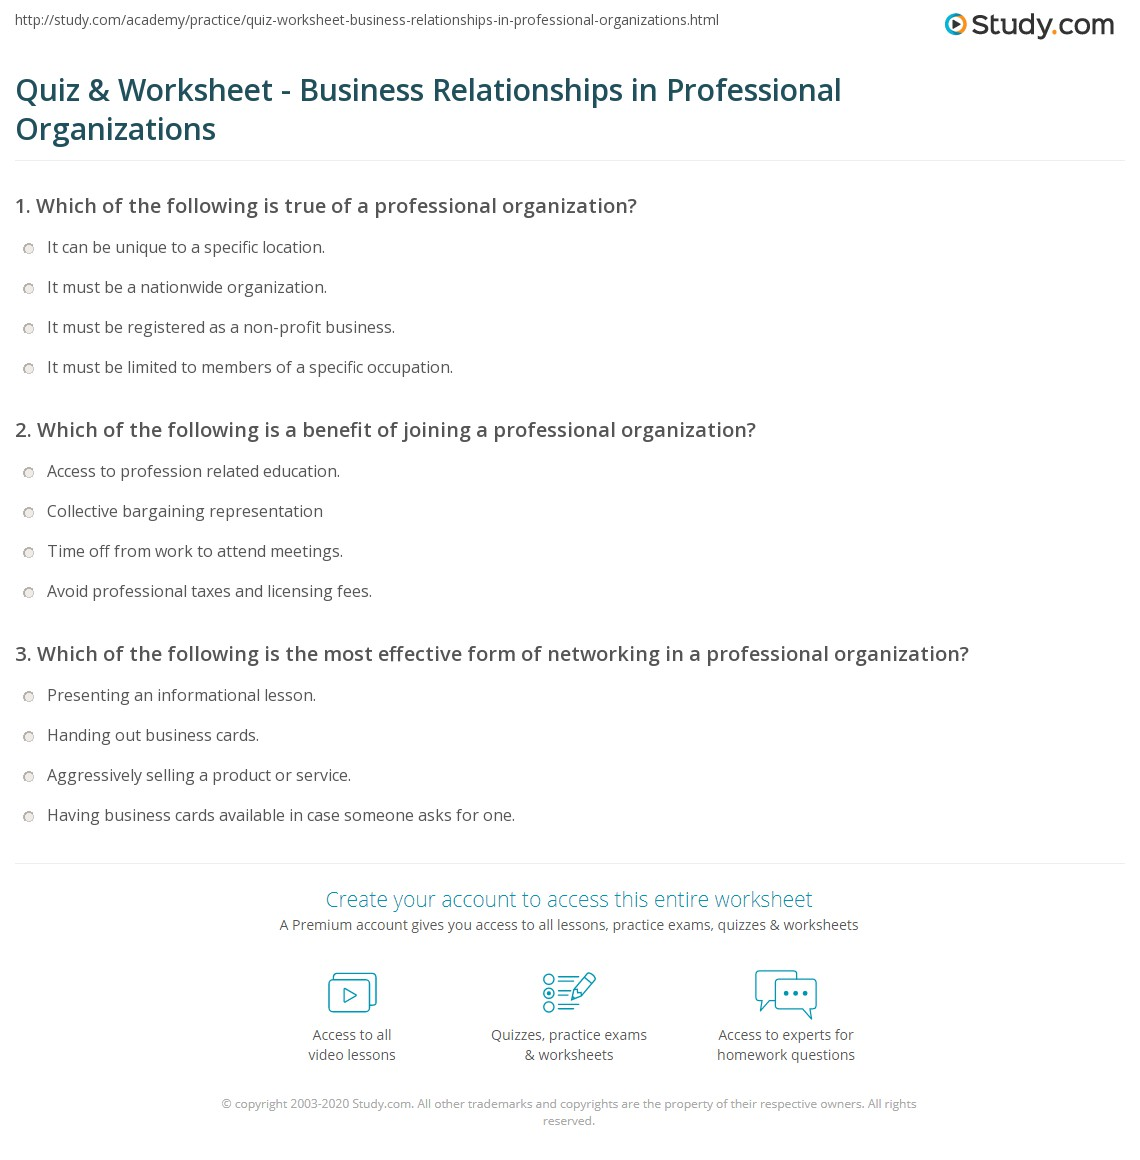 quiz worksheet business relationships in professional print how professional organizations foster business relationships worksheet